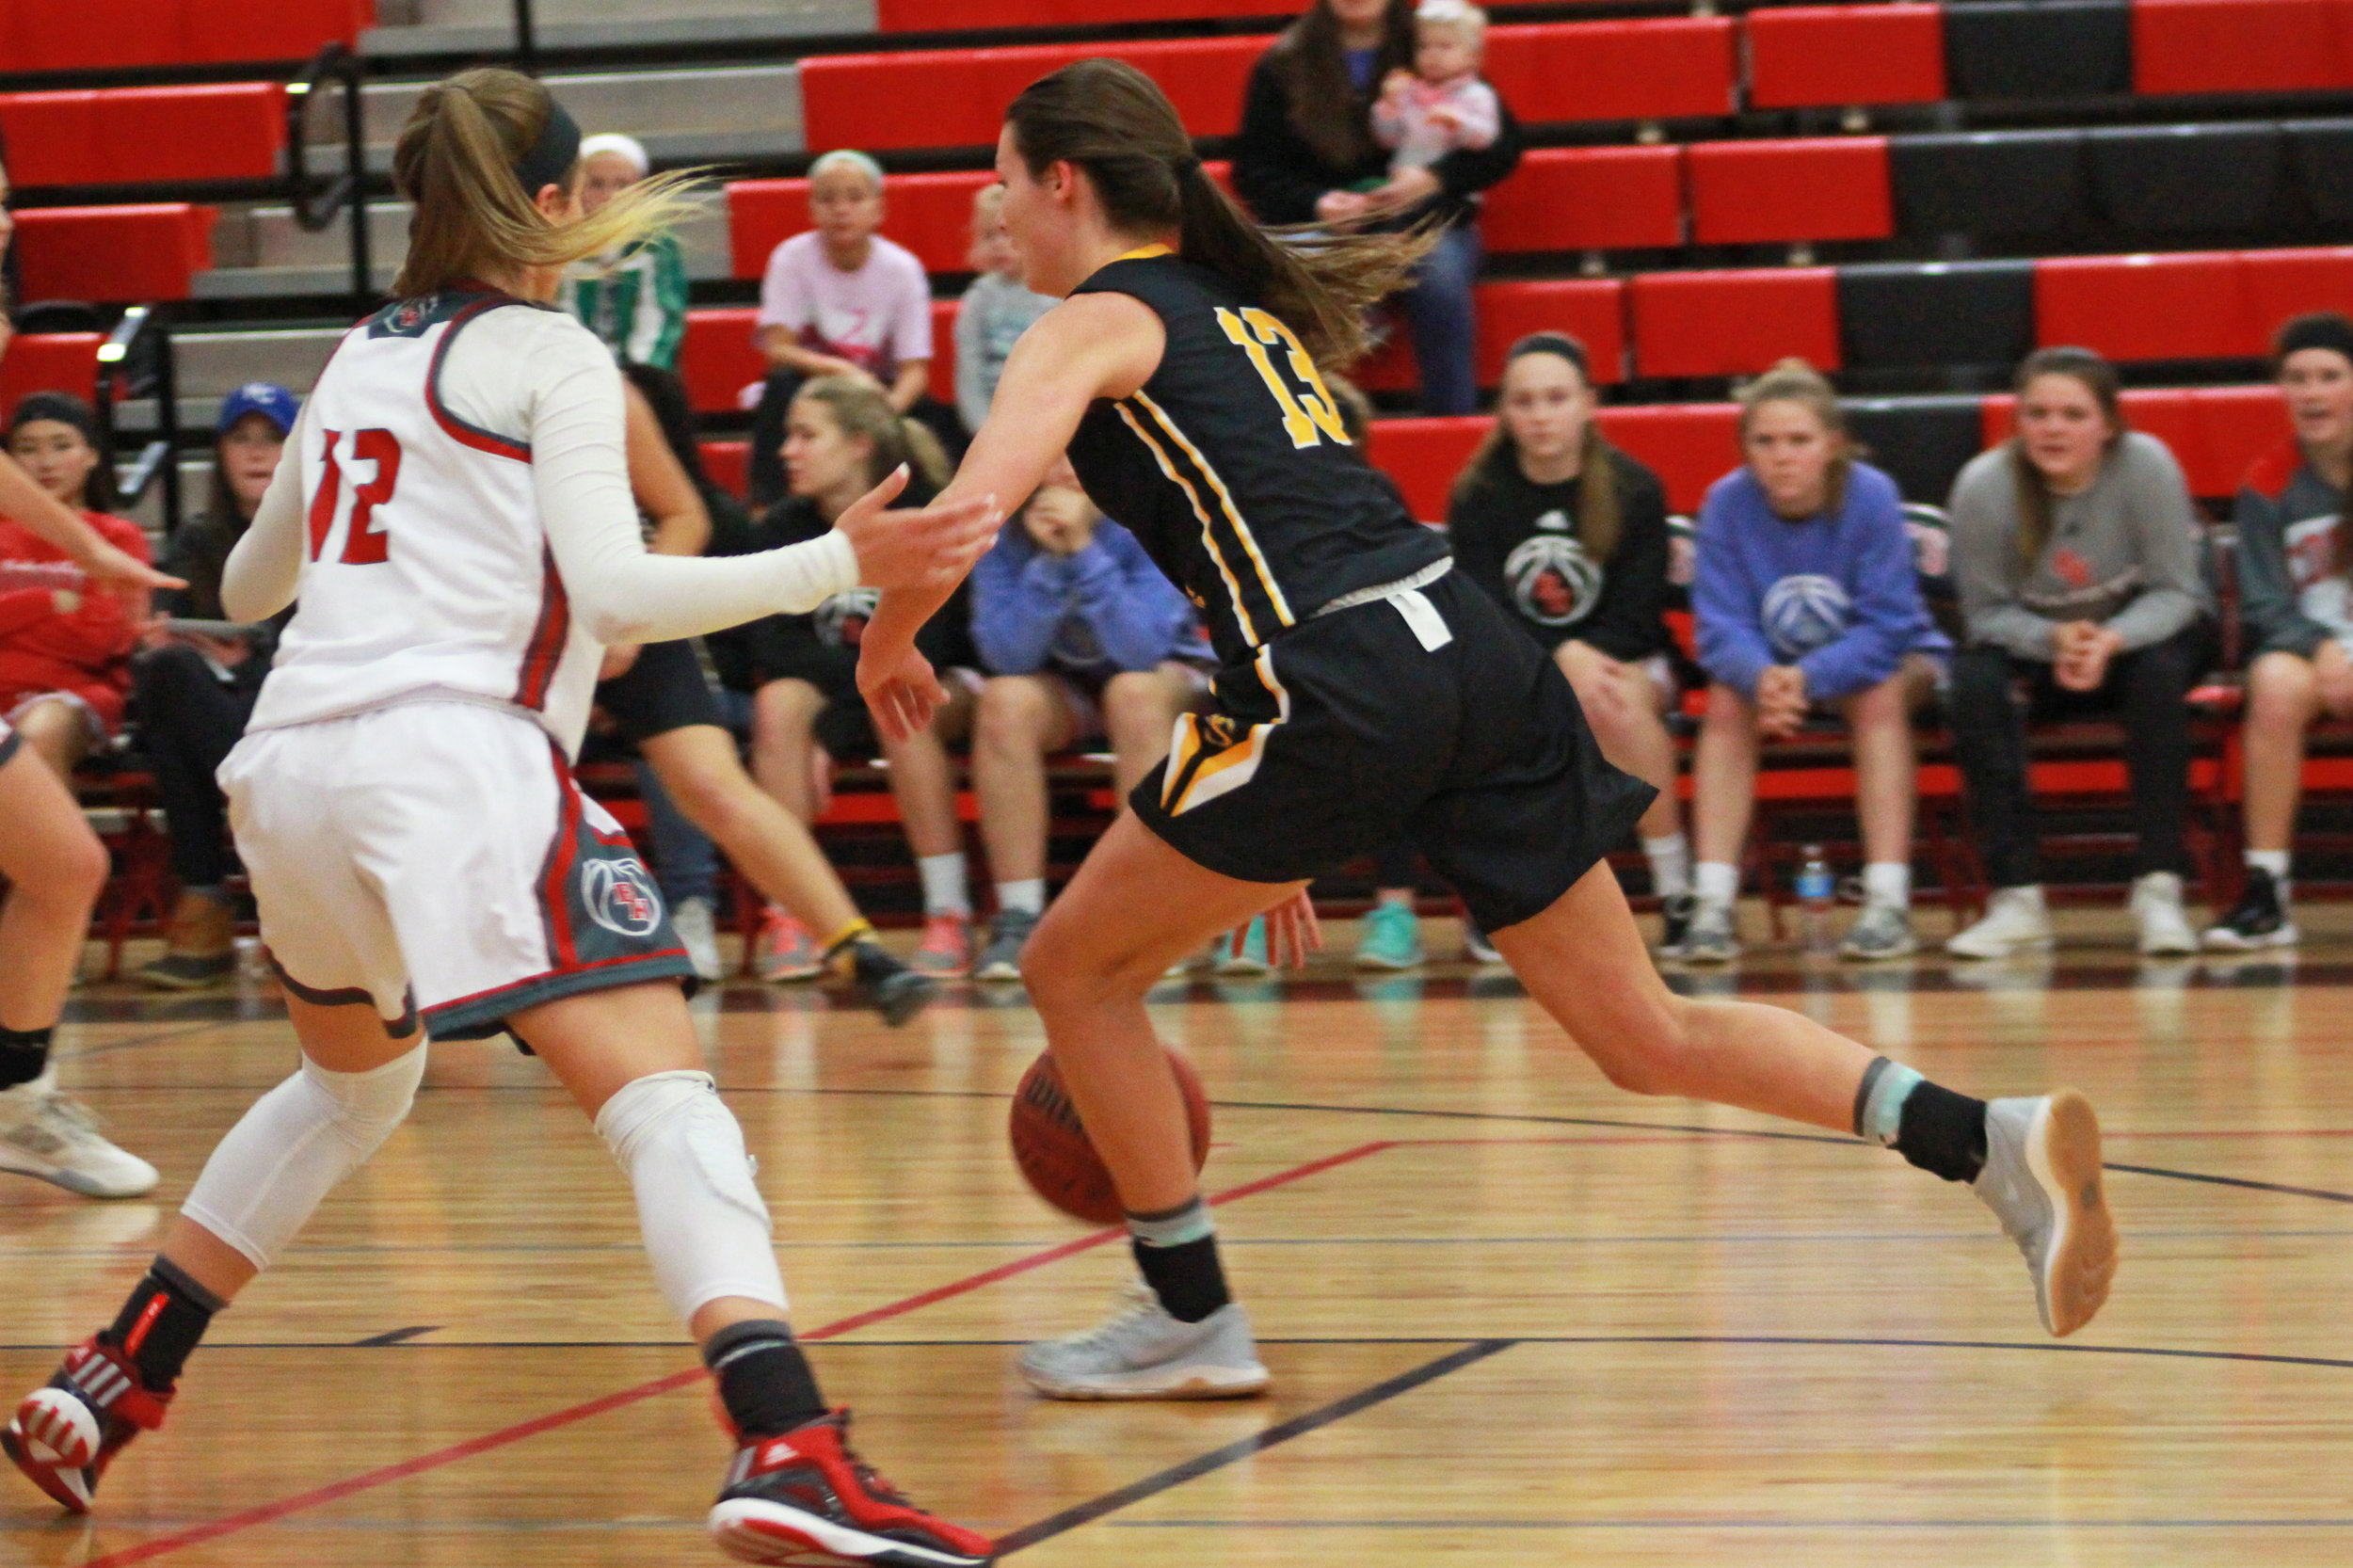 Holly Kersgieter scored 19 Tuesday night against the Jenks Lady Trojans. (Photo: Scott Emigh).